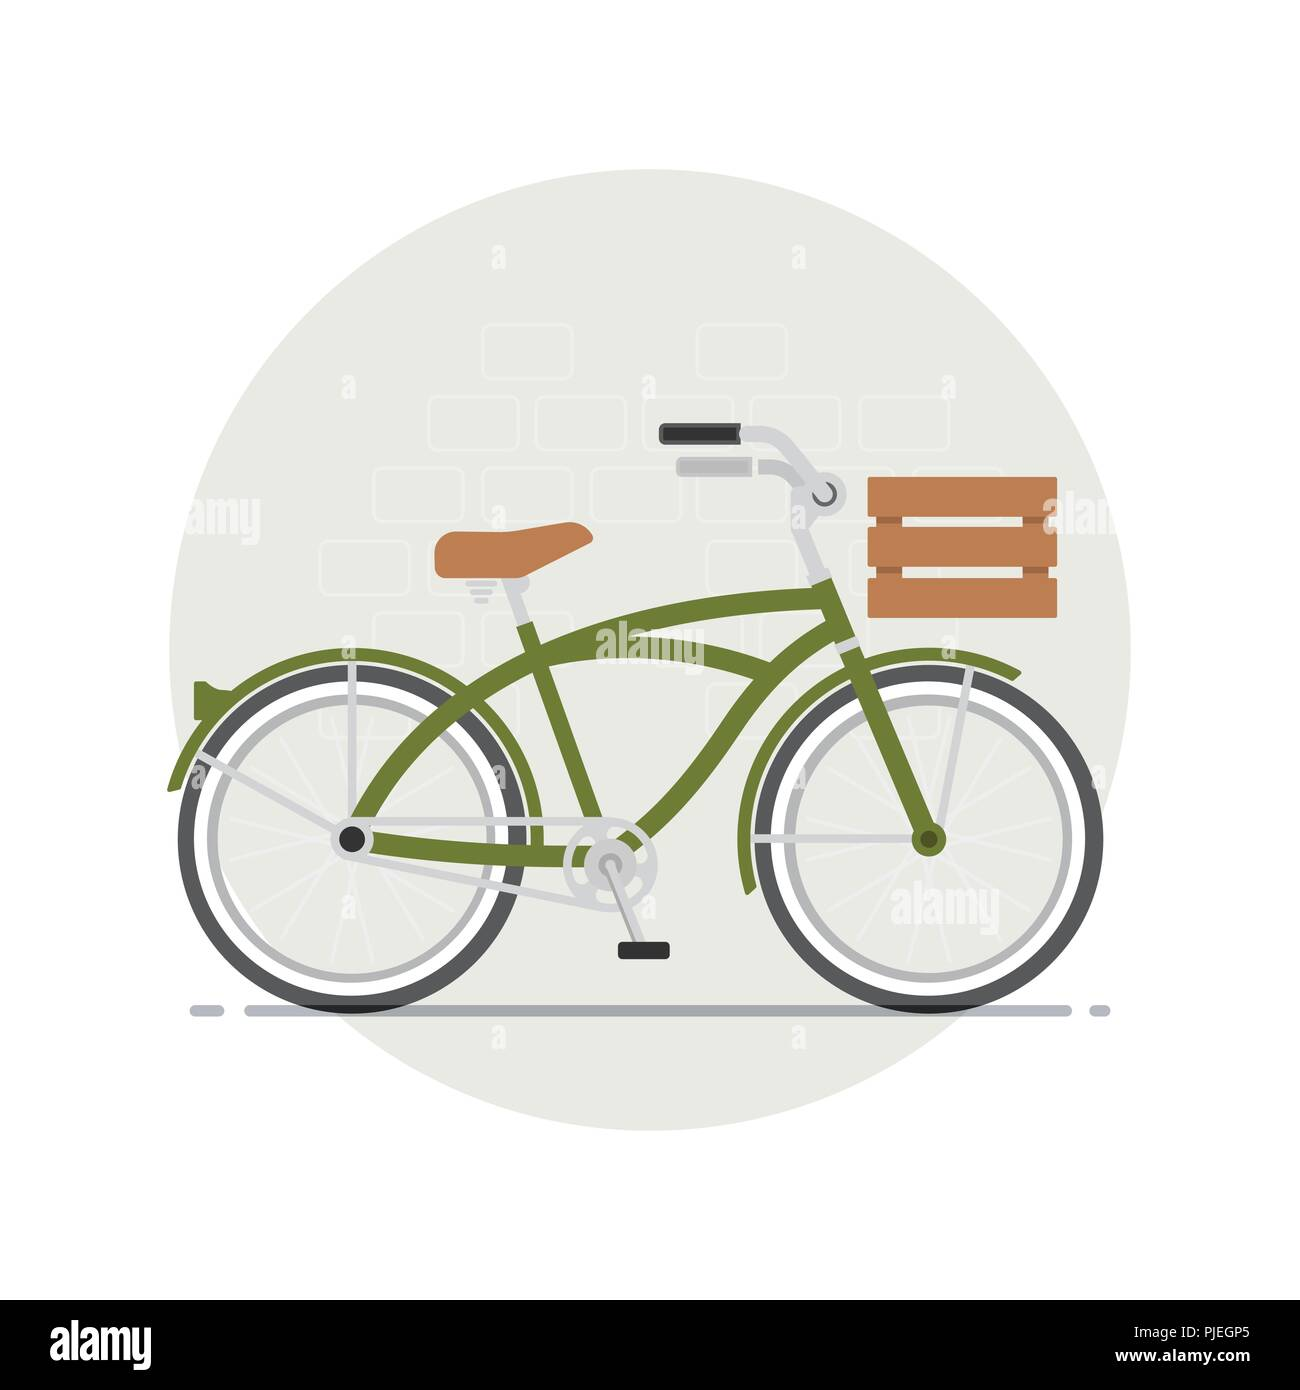 Bicycle with basket - Stock Image